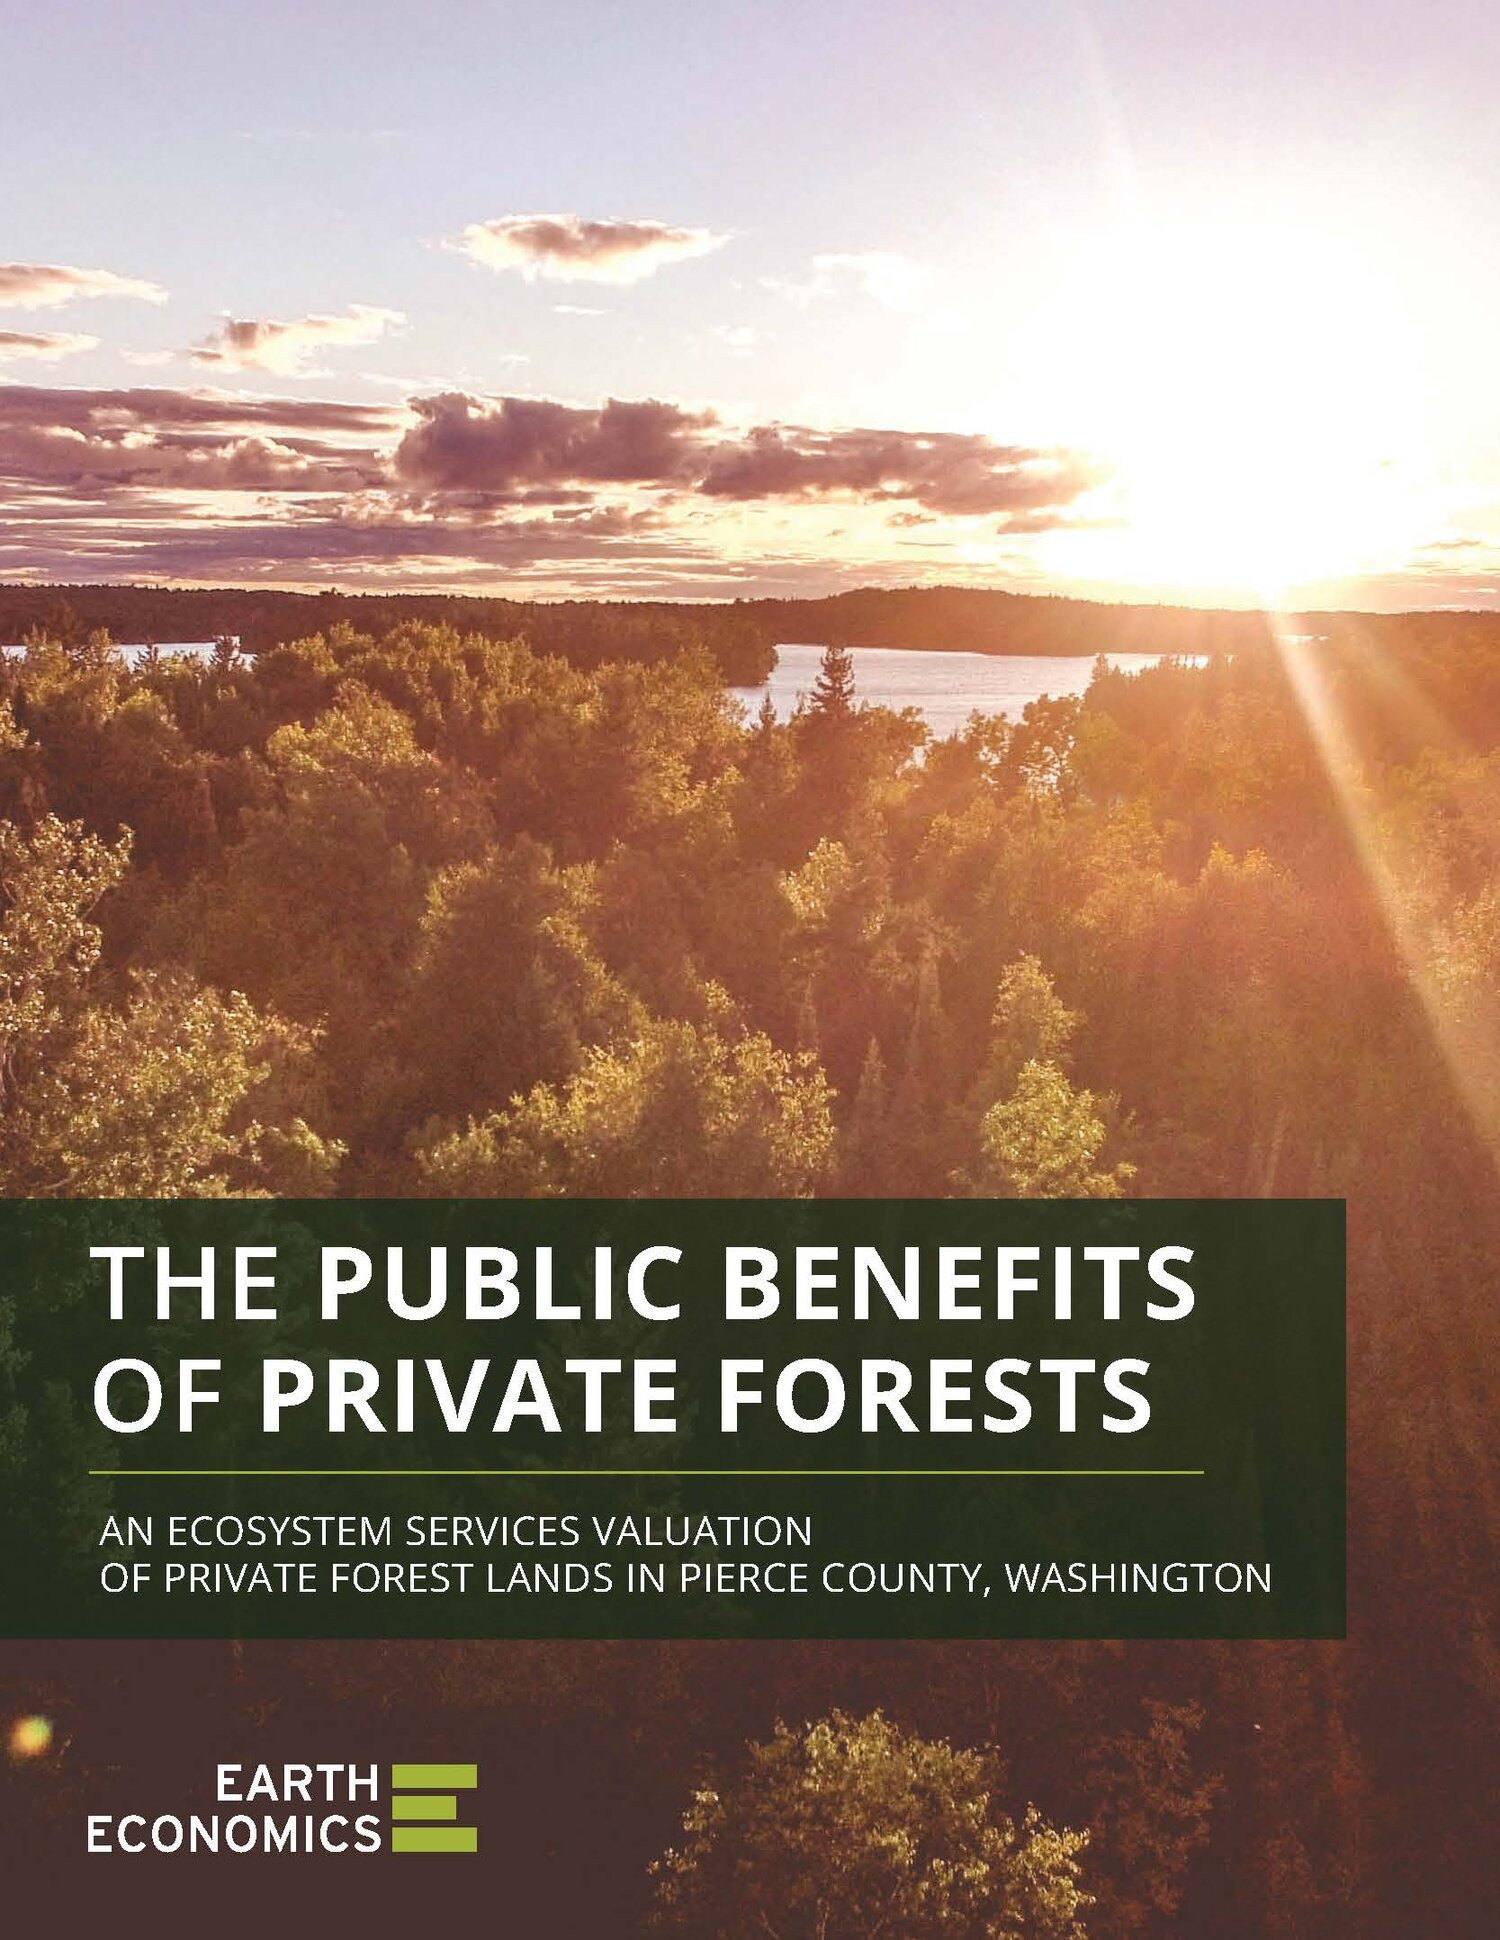 Pages from PublicBenefitsPrivateForests_EarthEconomics_0118-2.jpg